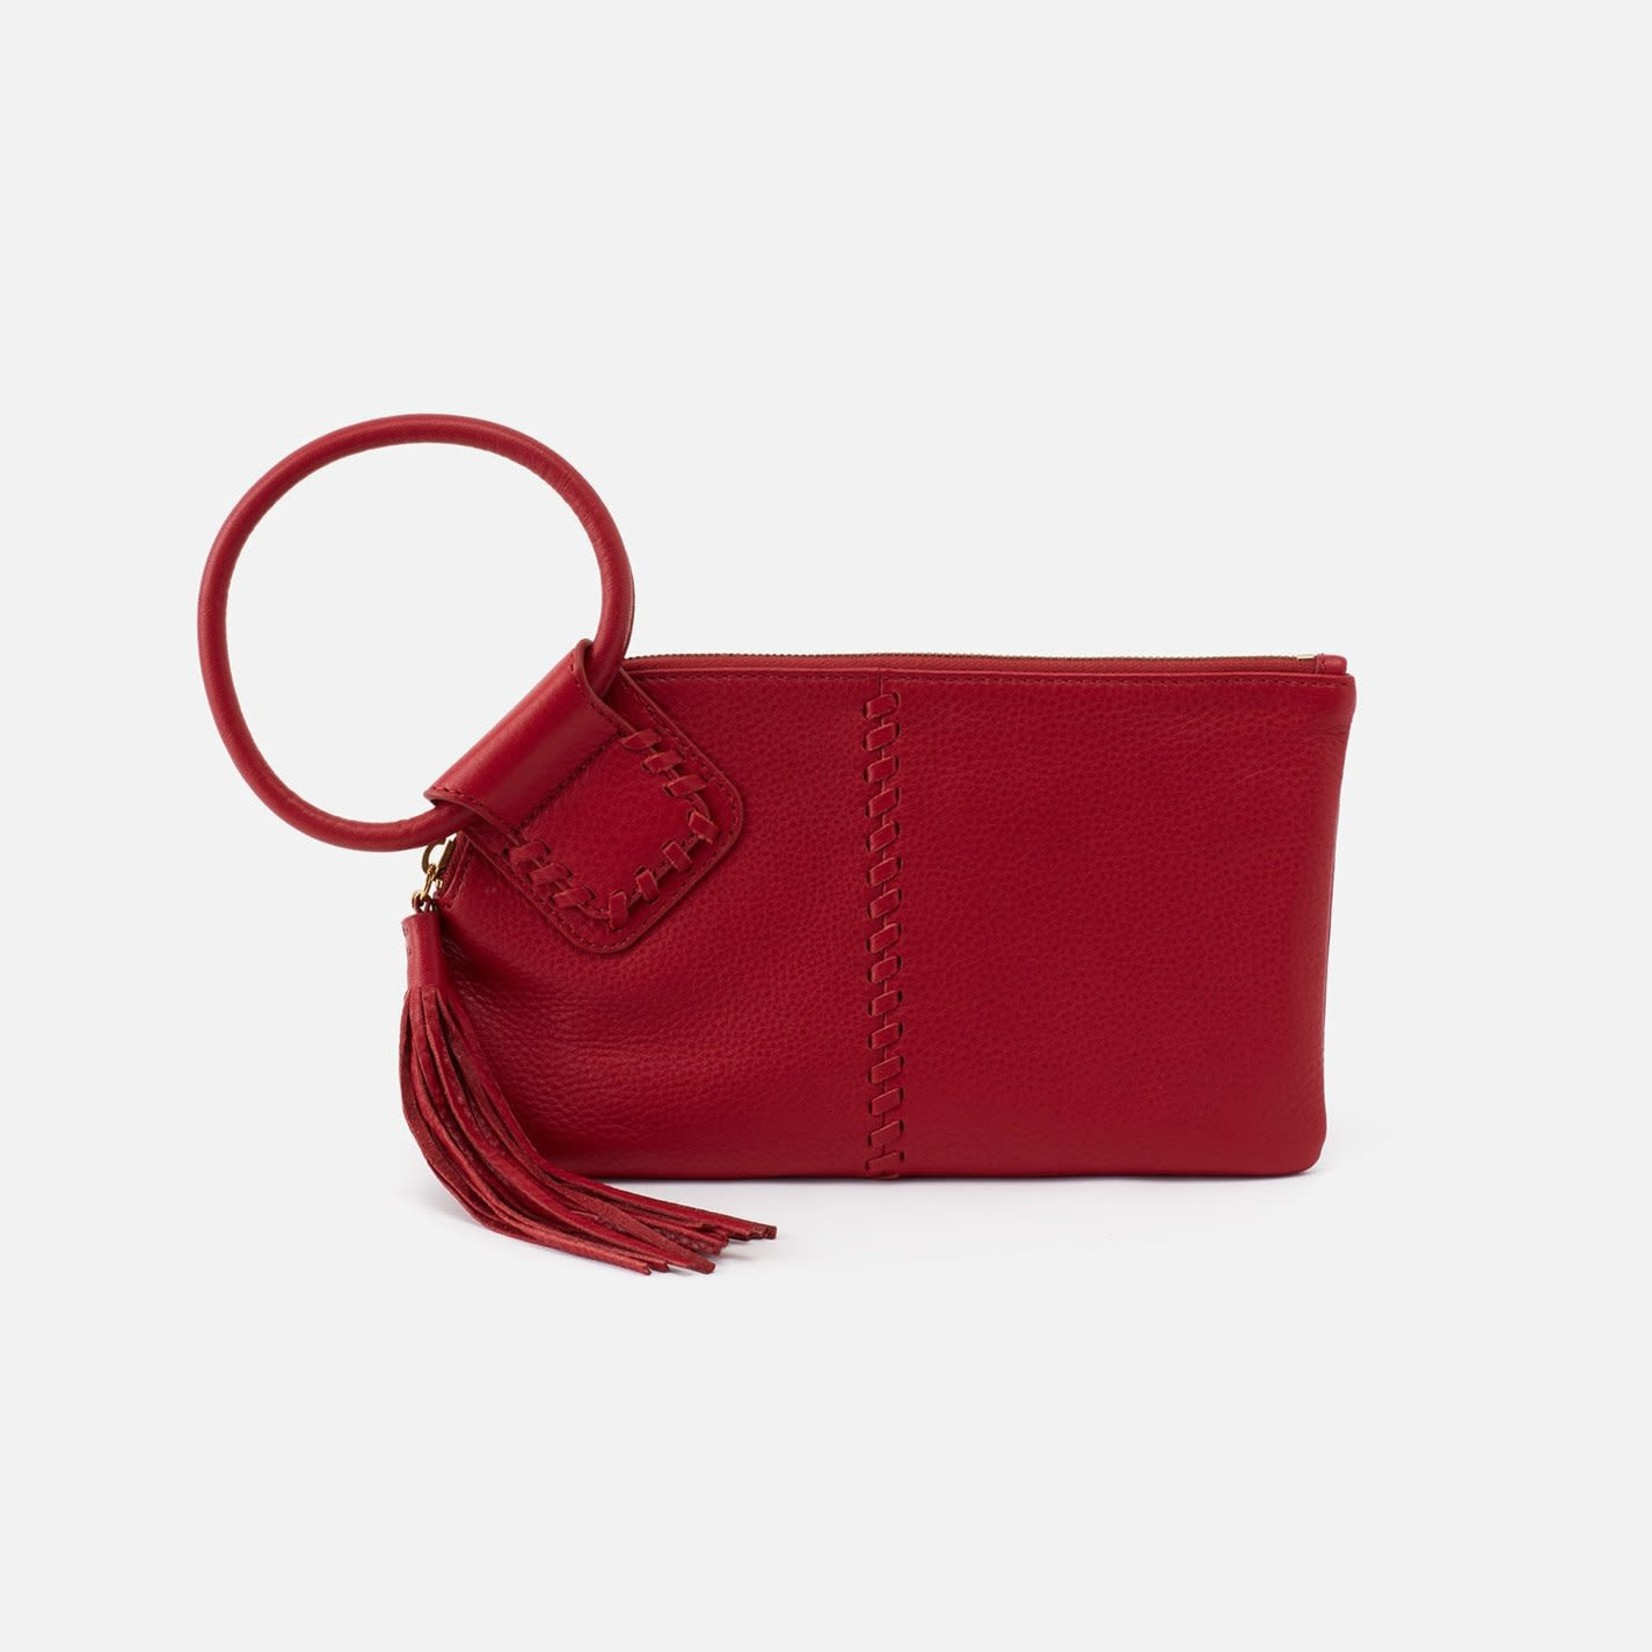 HOBO Sable Scarlet Soft Hide Leather Wristlet w/Loop